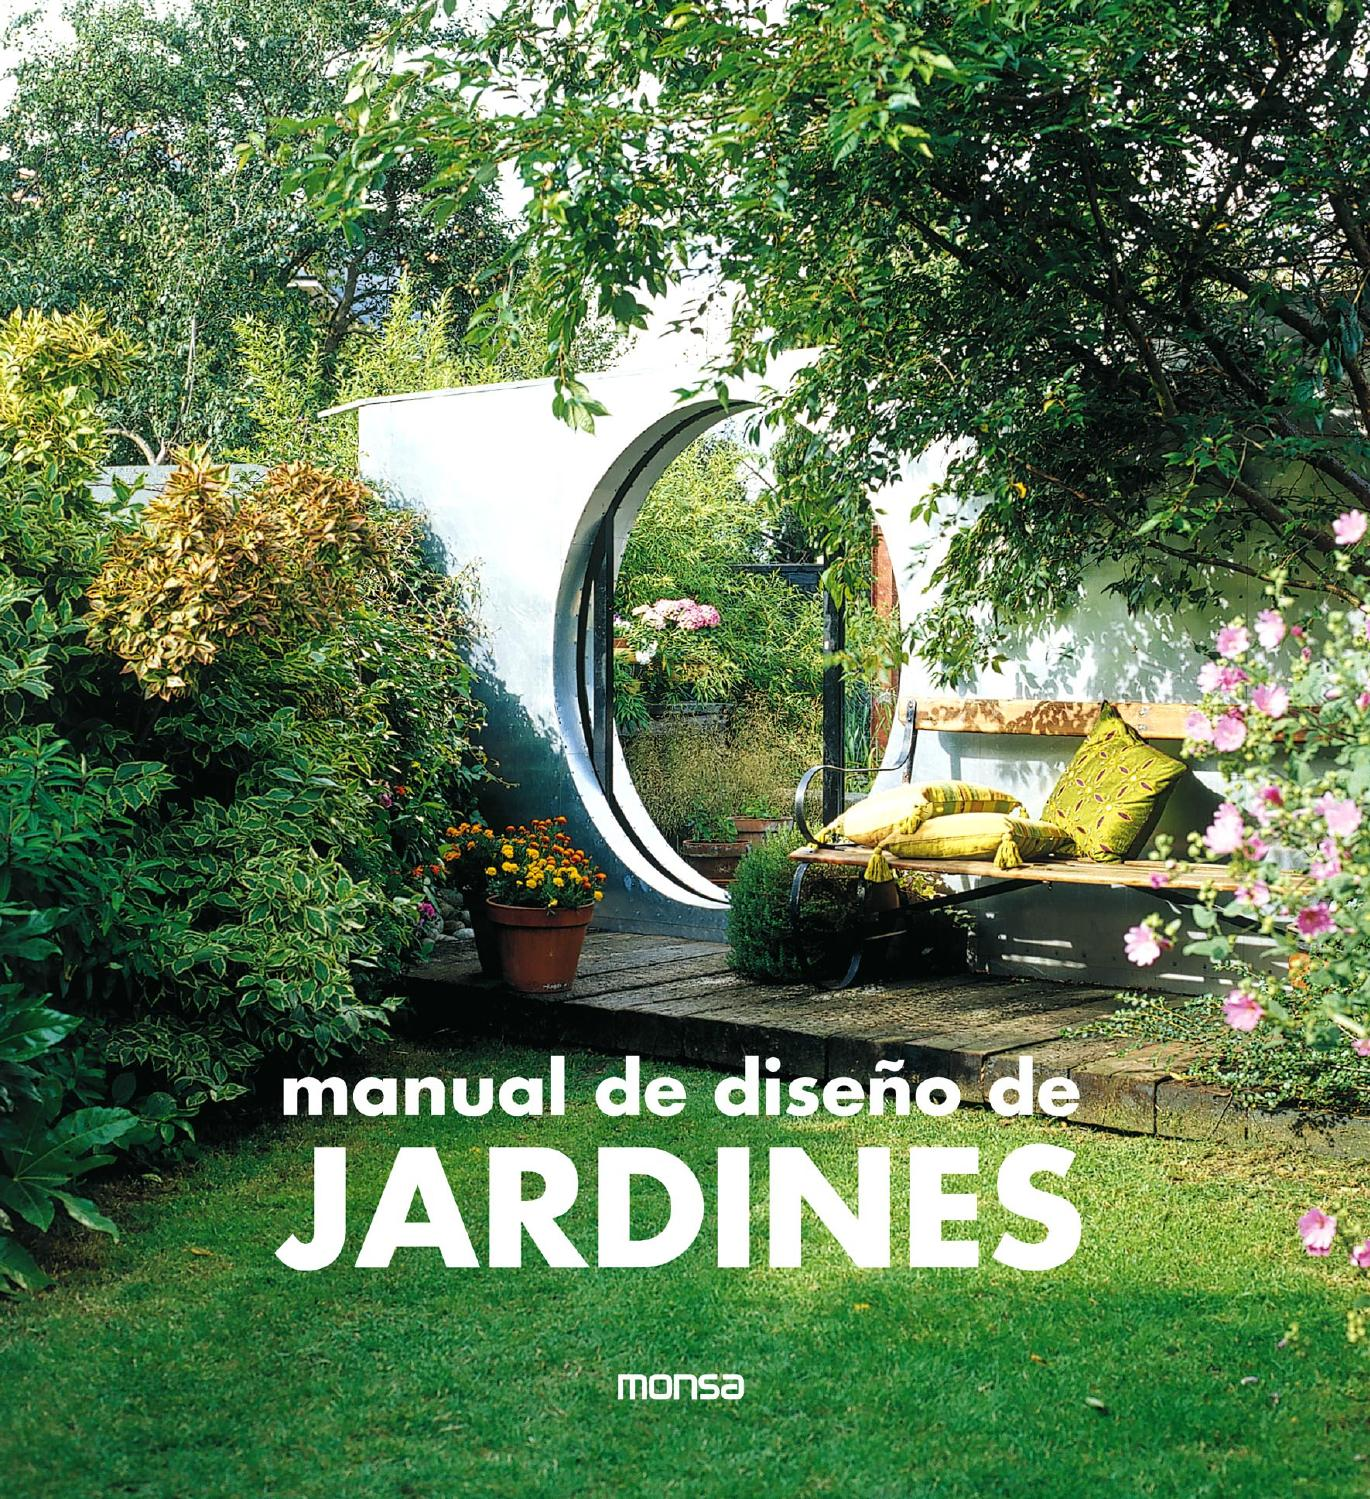 Manual de dise o de jardines by monsa publications issuu - Diseno de jardines pequenos para casas ...